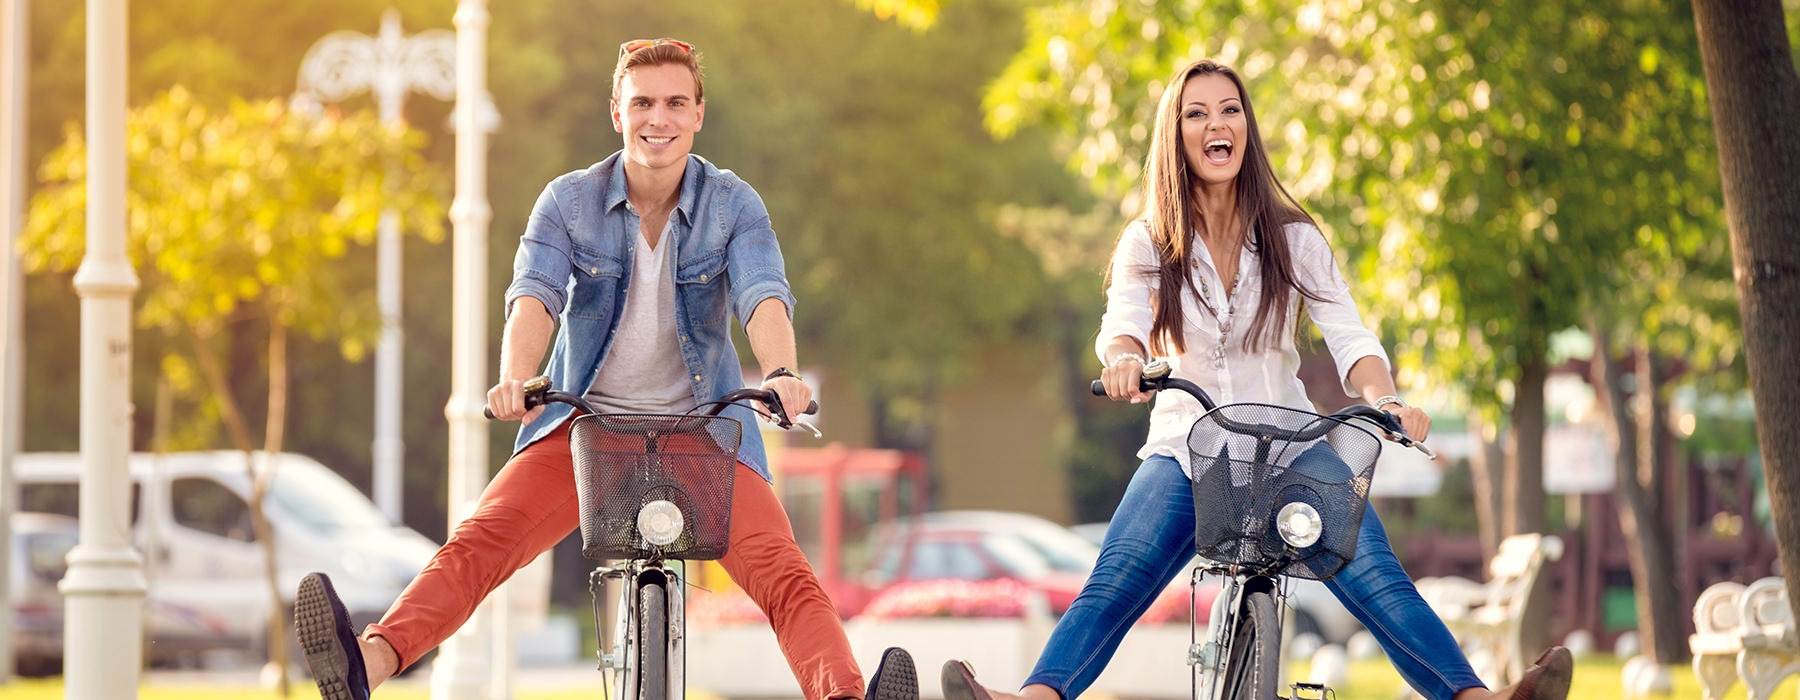 couple riding bikes in a park